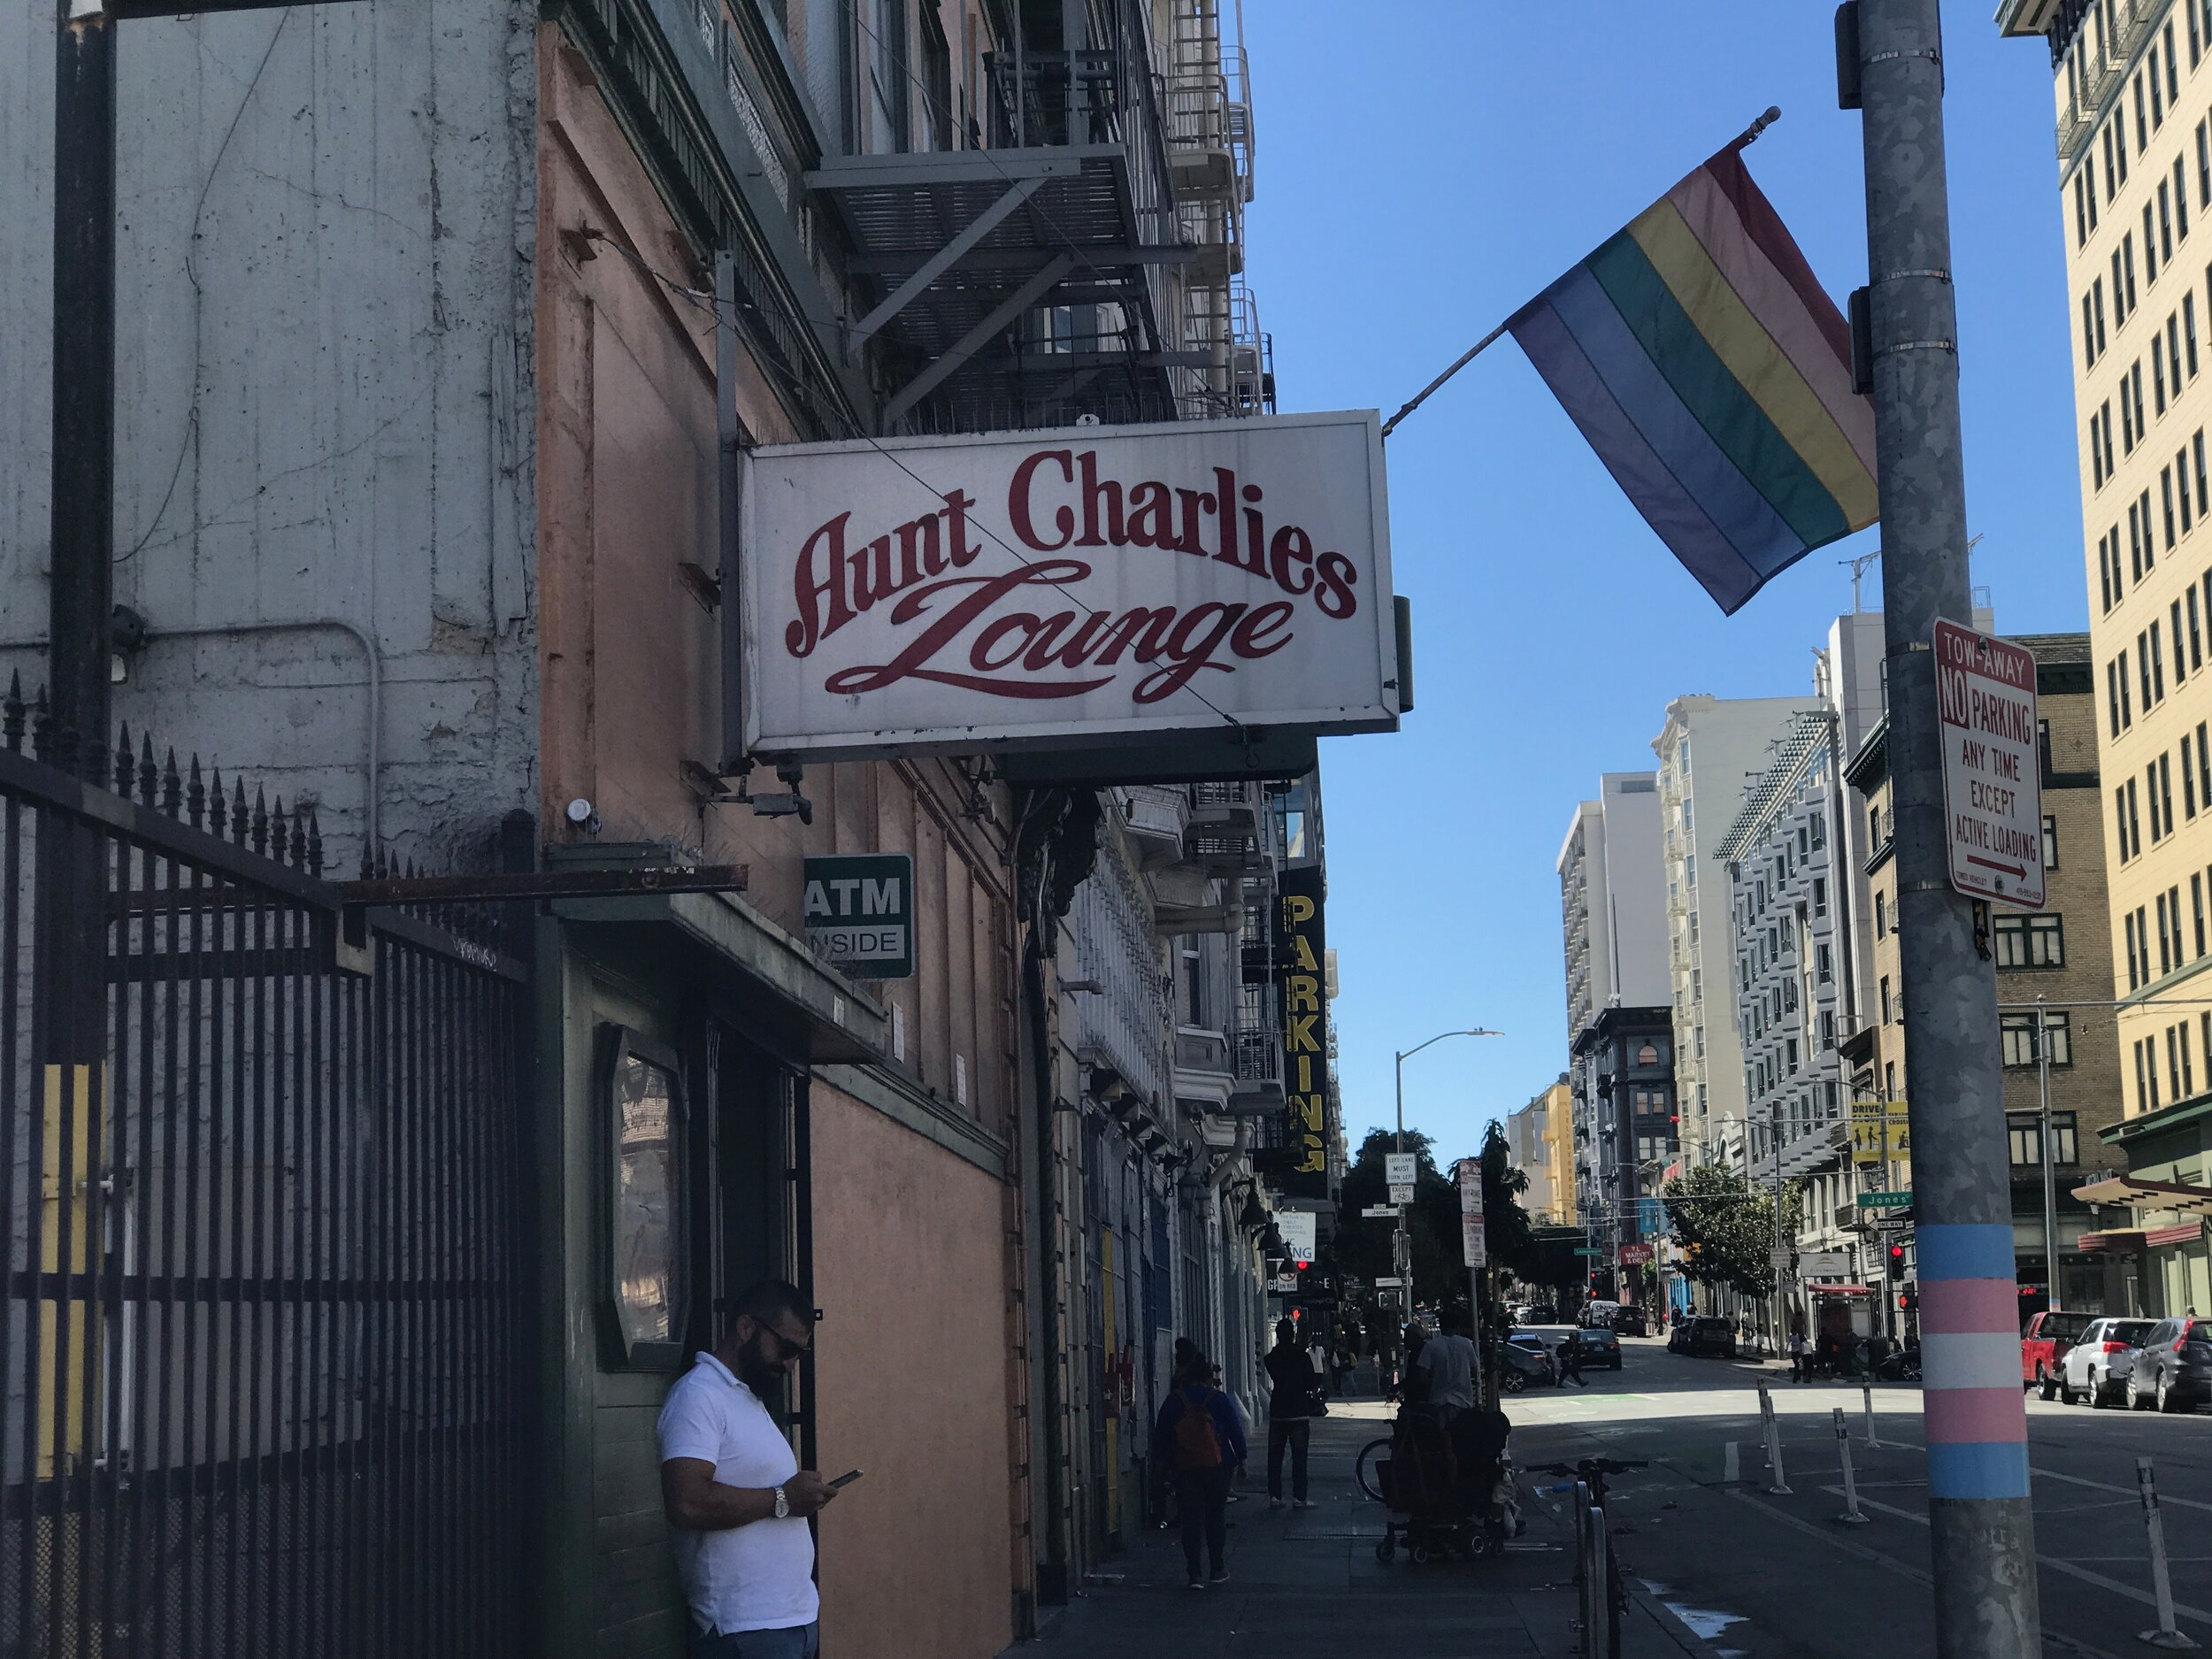 Noted for its weekend drag shows, Aunt Charley's is the last surviving gay bar in the Tenderloin.